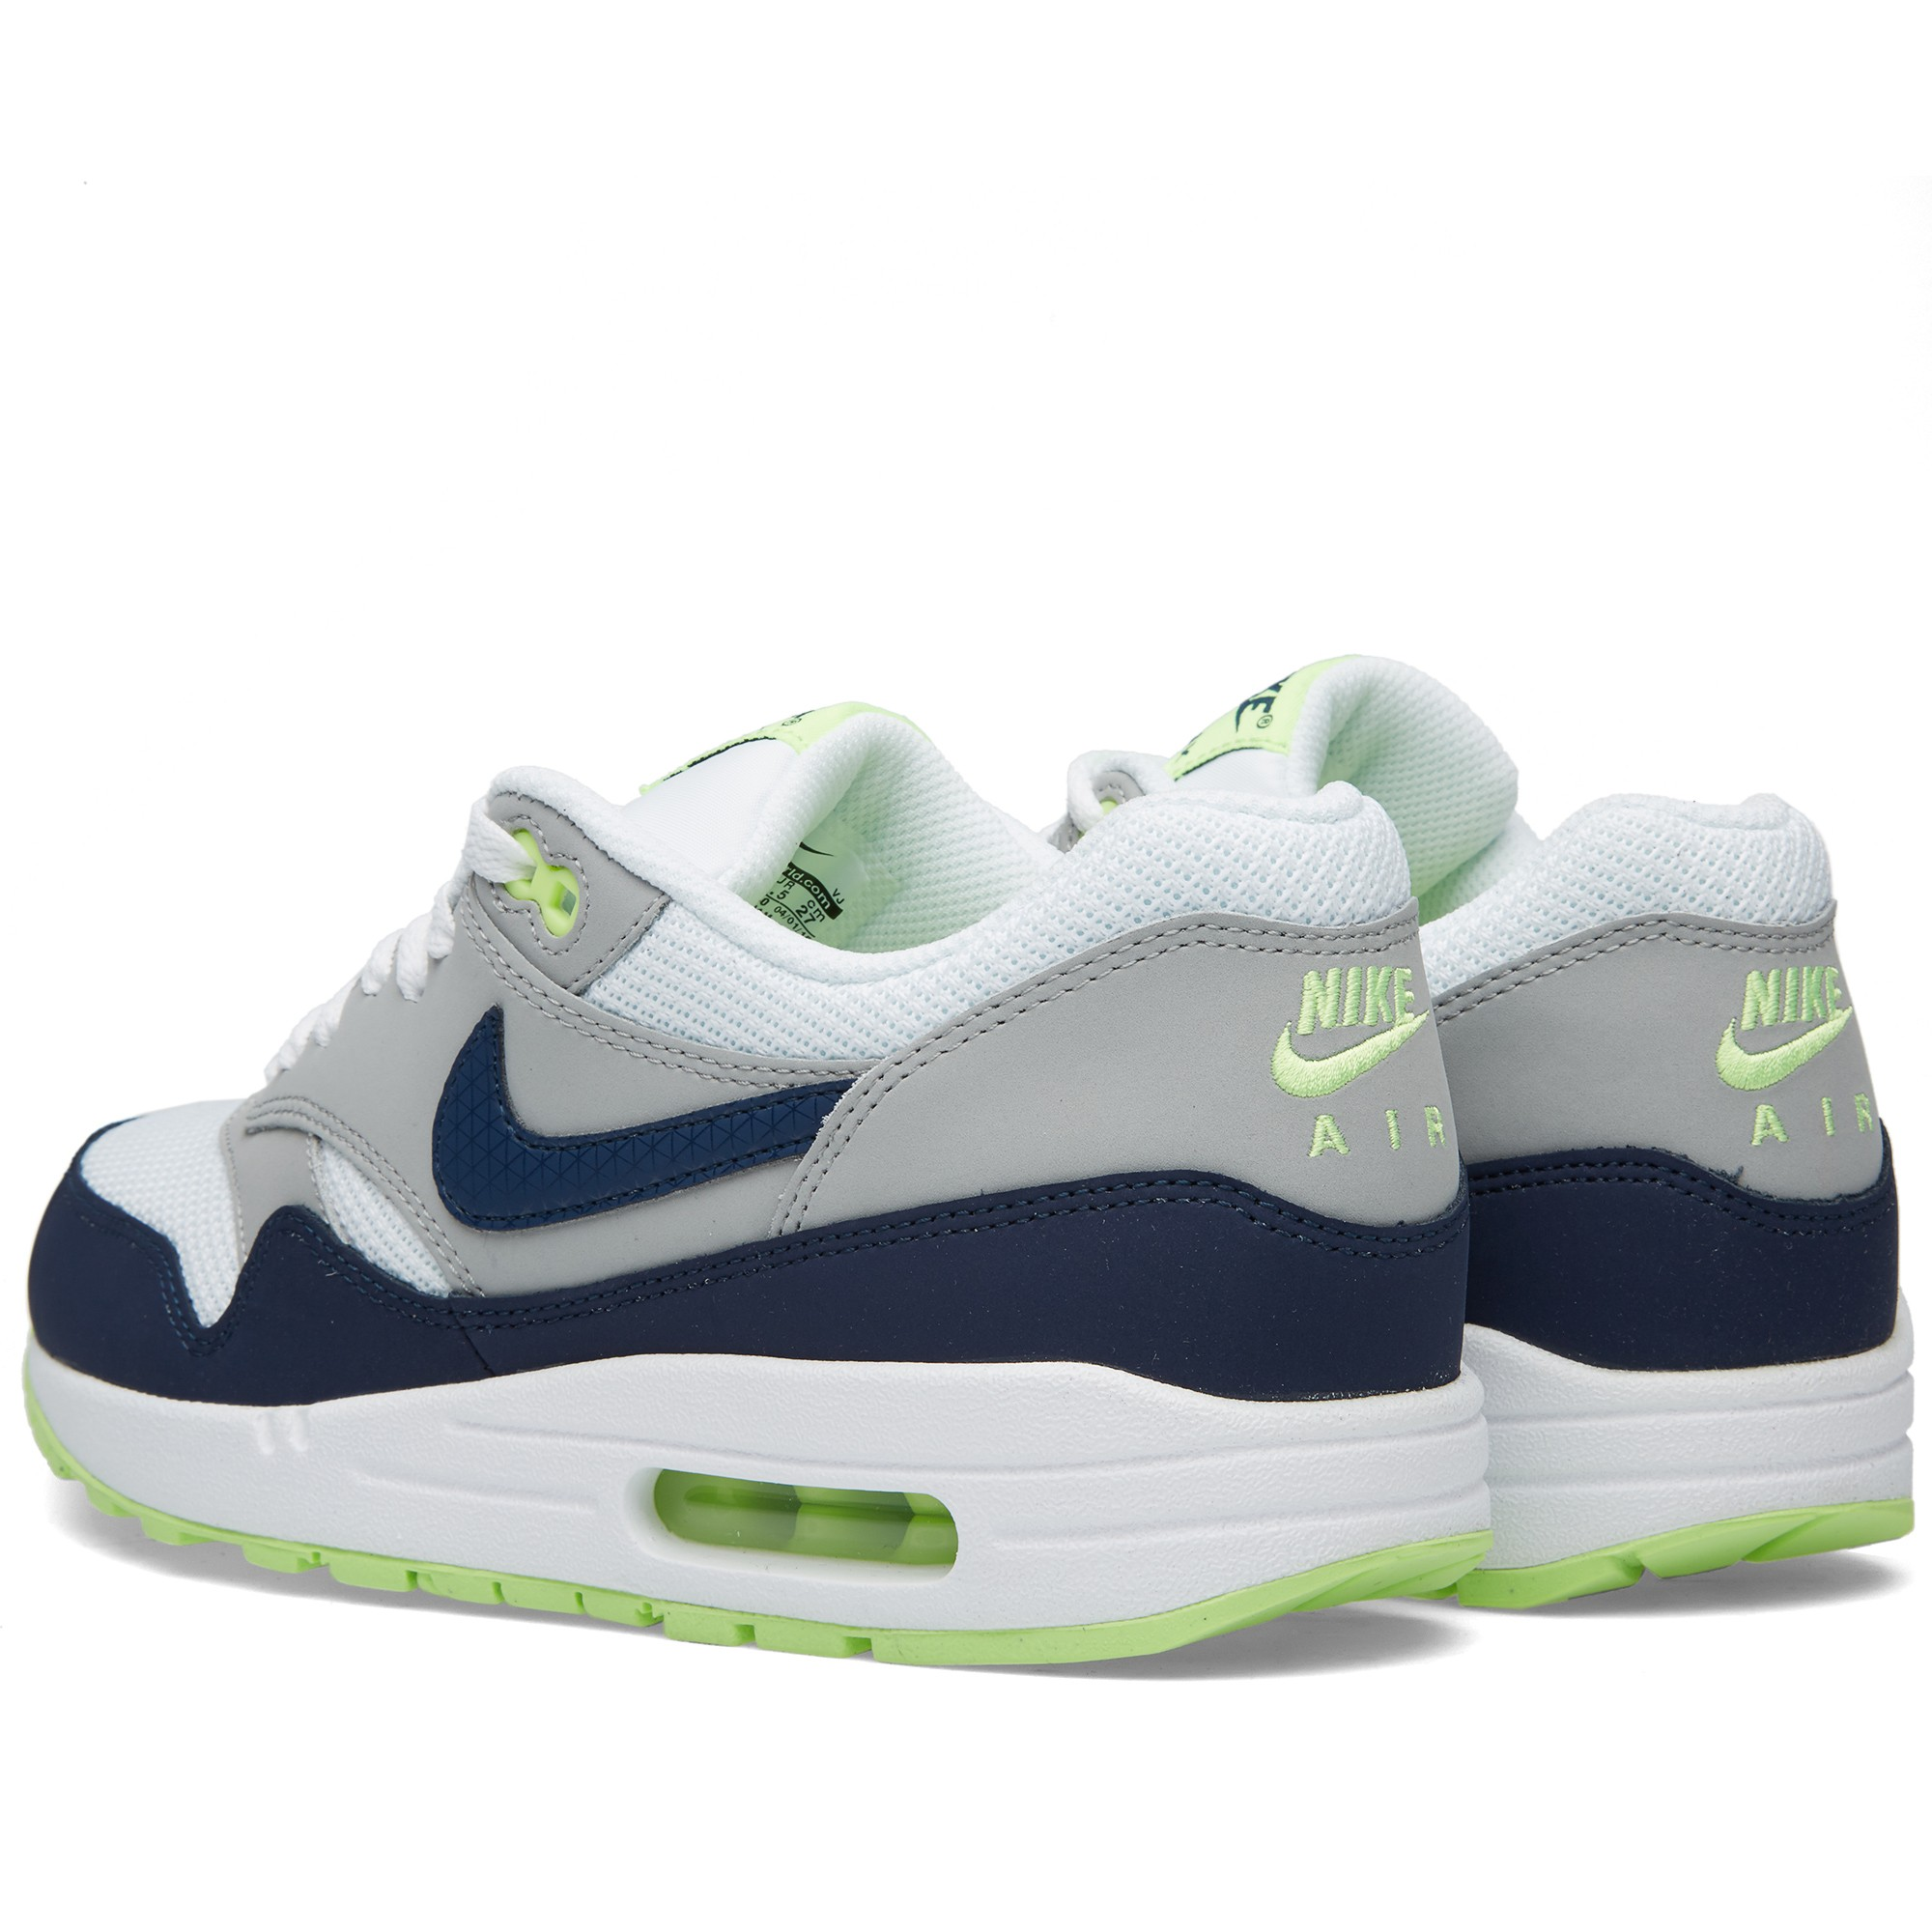 76503895 Nike Air Max 1 Essential. £95£59. Sorry, this item has just gone out of  stock. Our stylists will find you something similar if you sign up for  Thread.